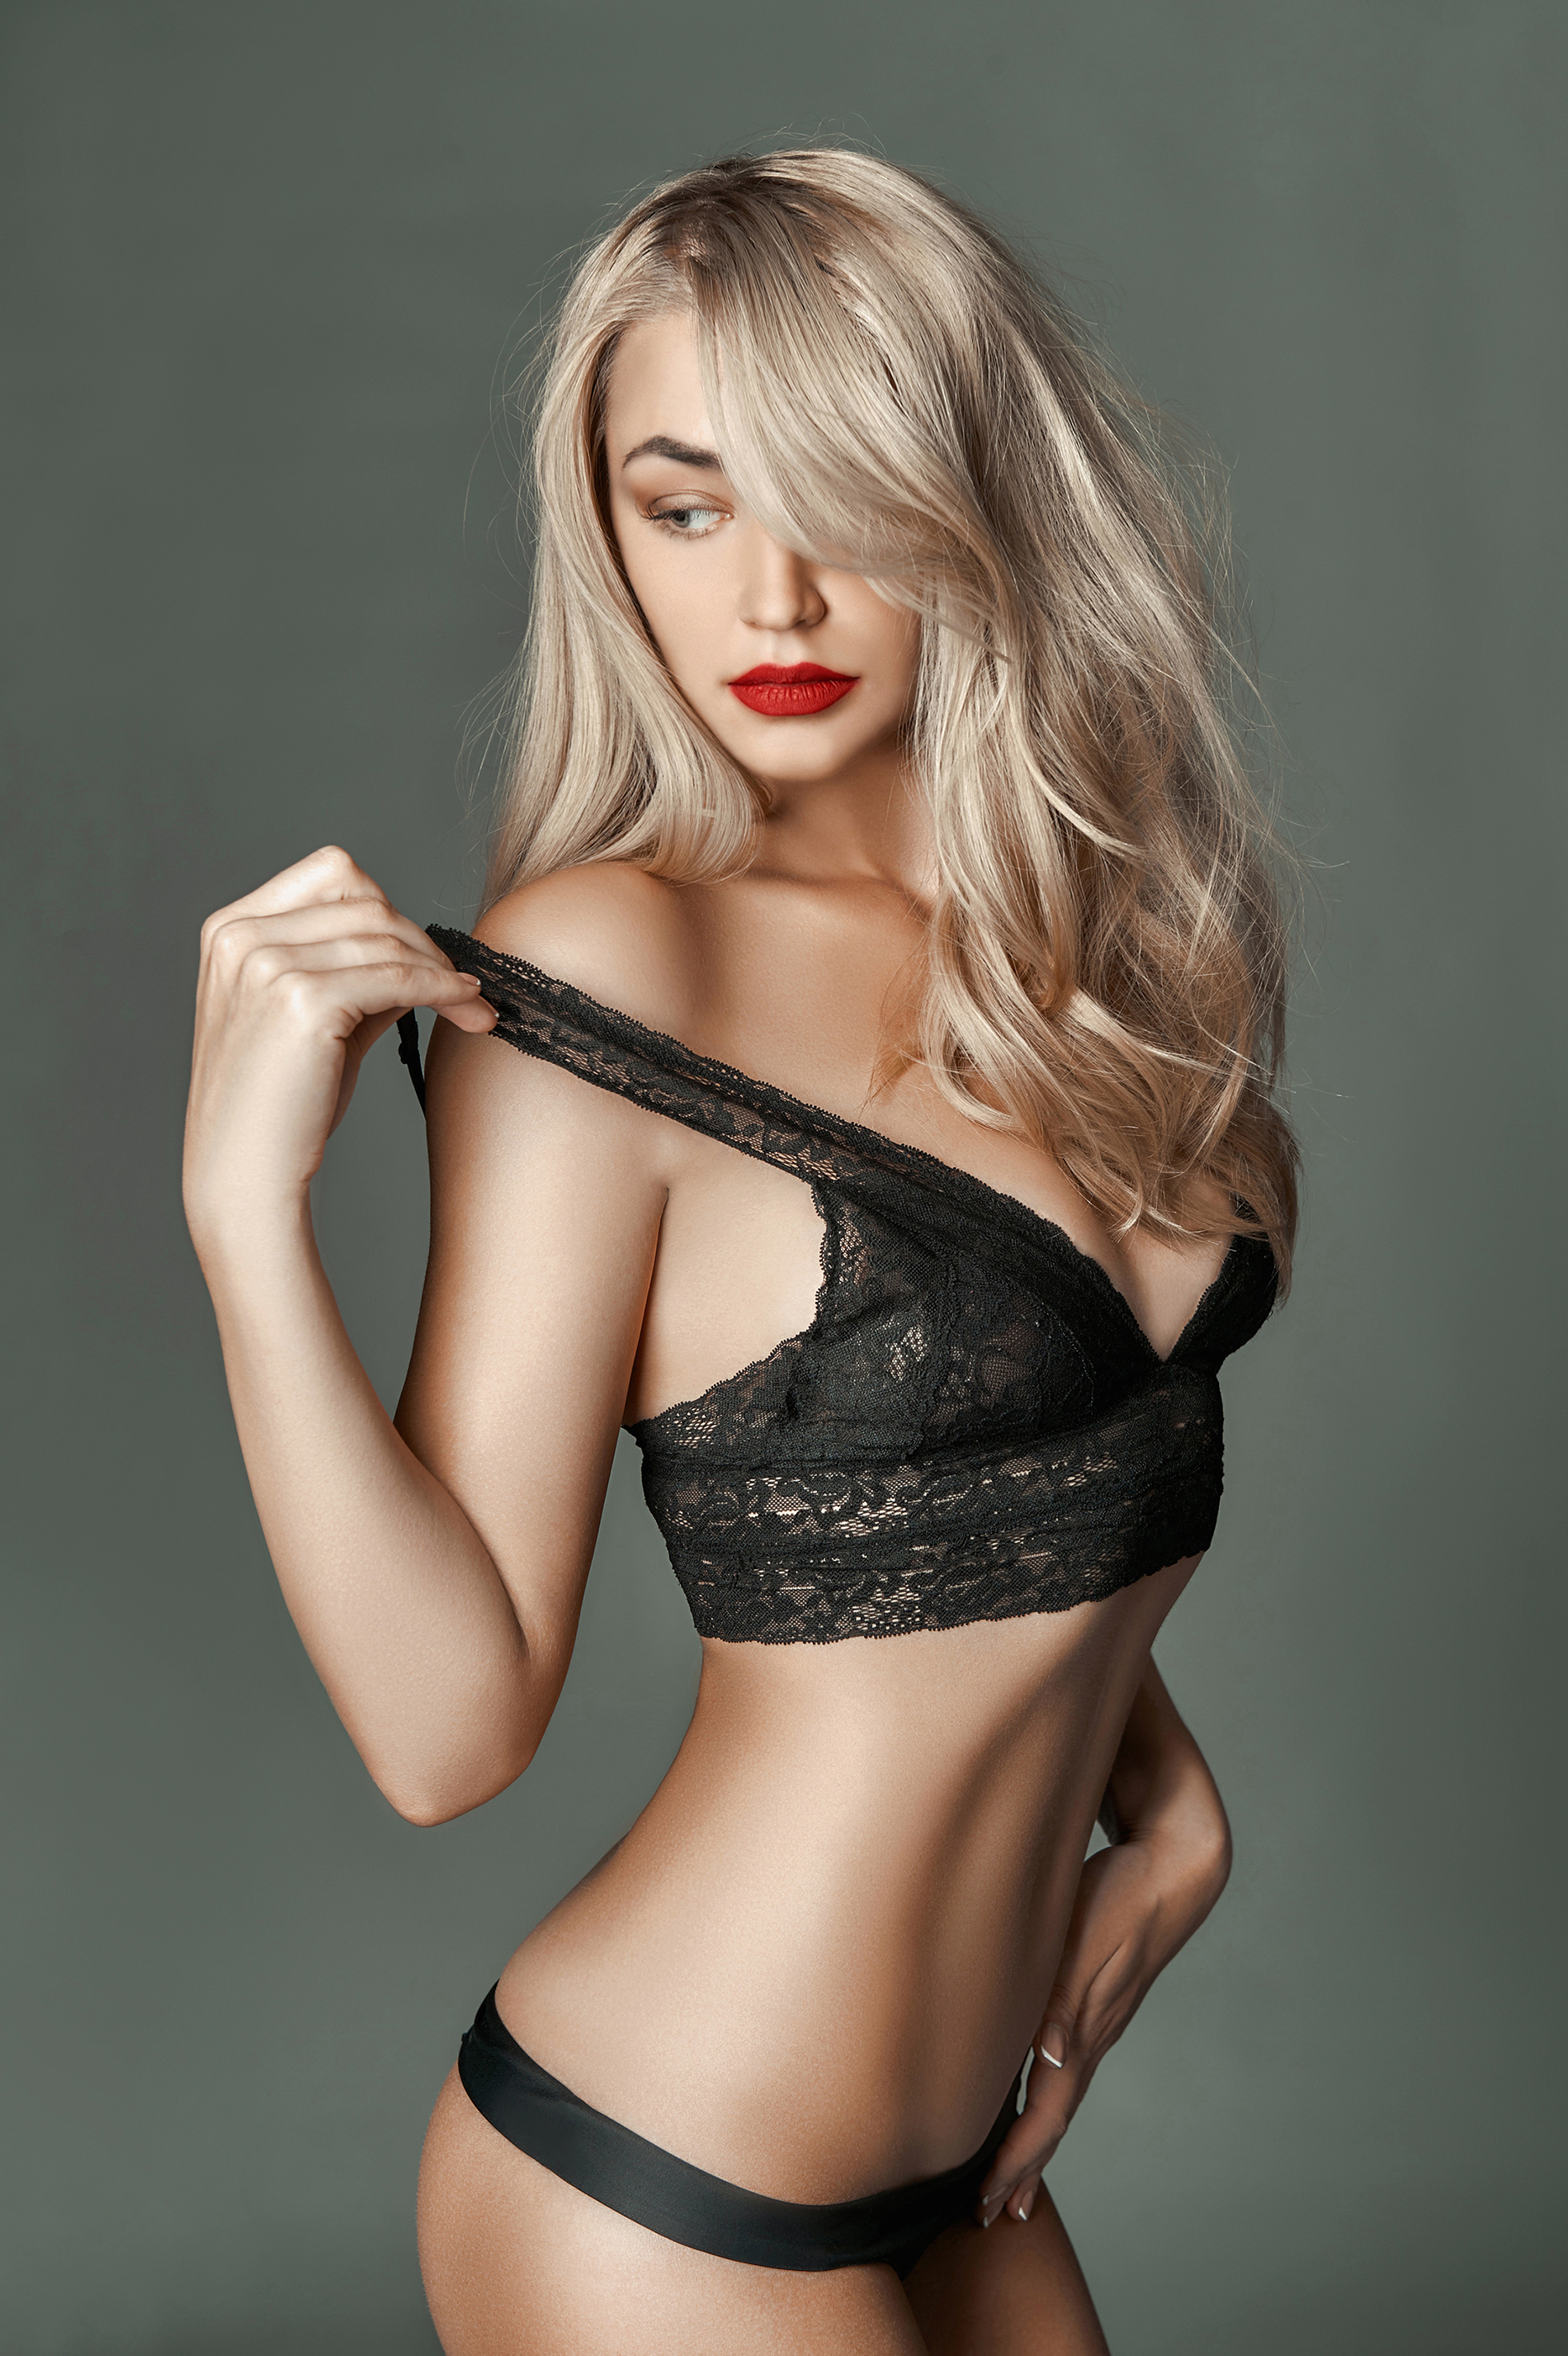 Curly hair wearing Black Lace Lingerie beauties 52990